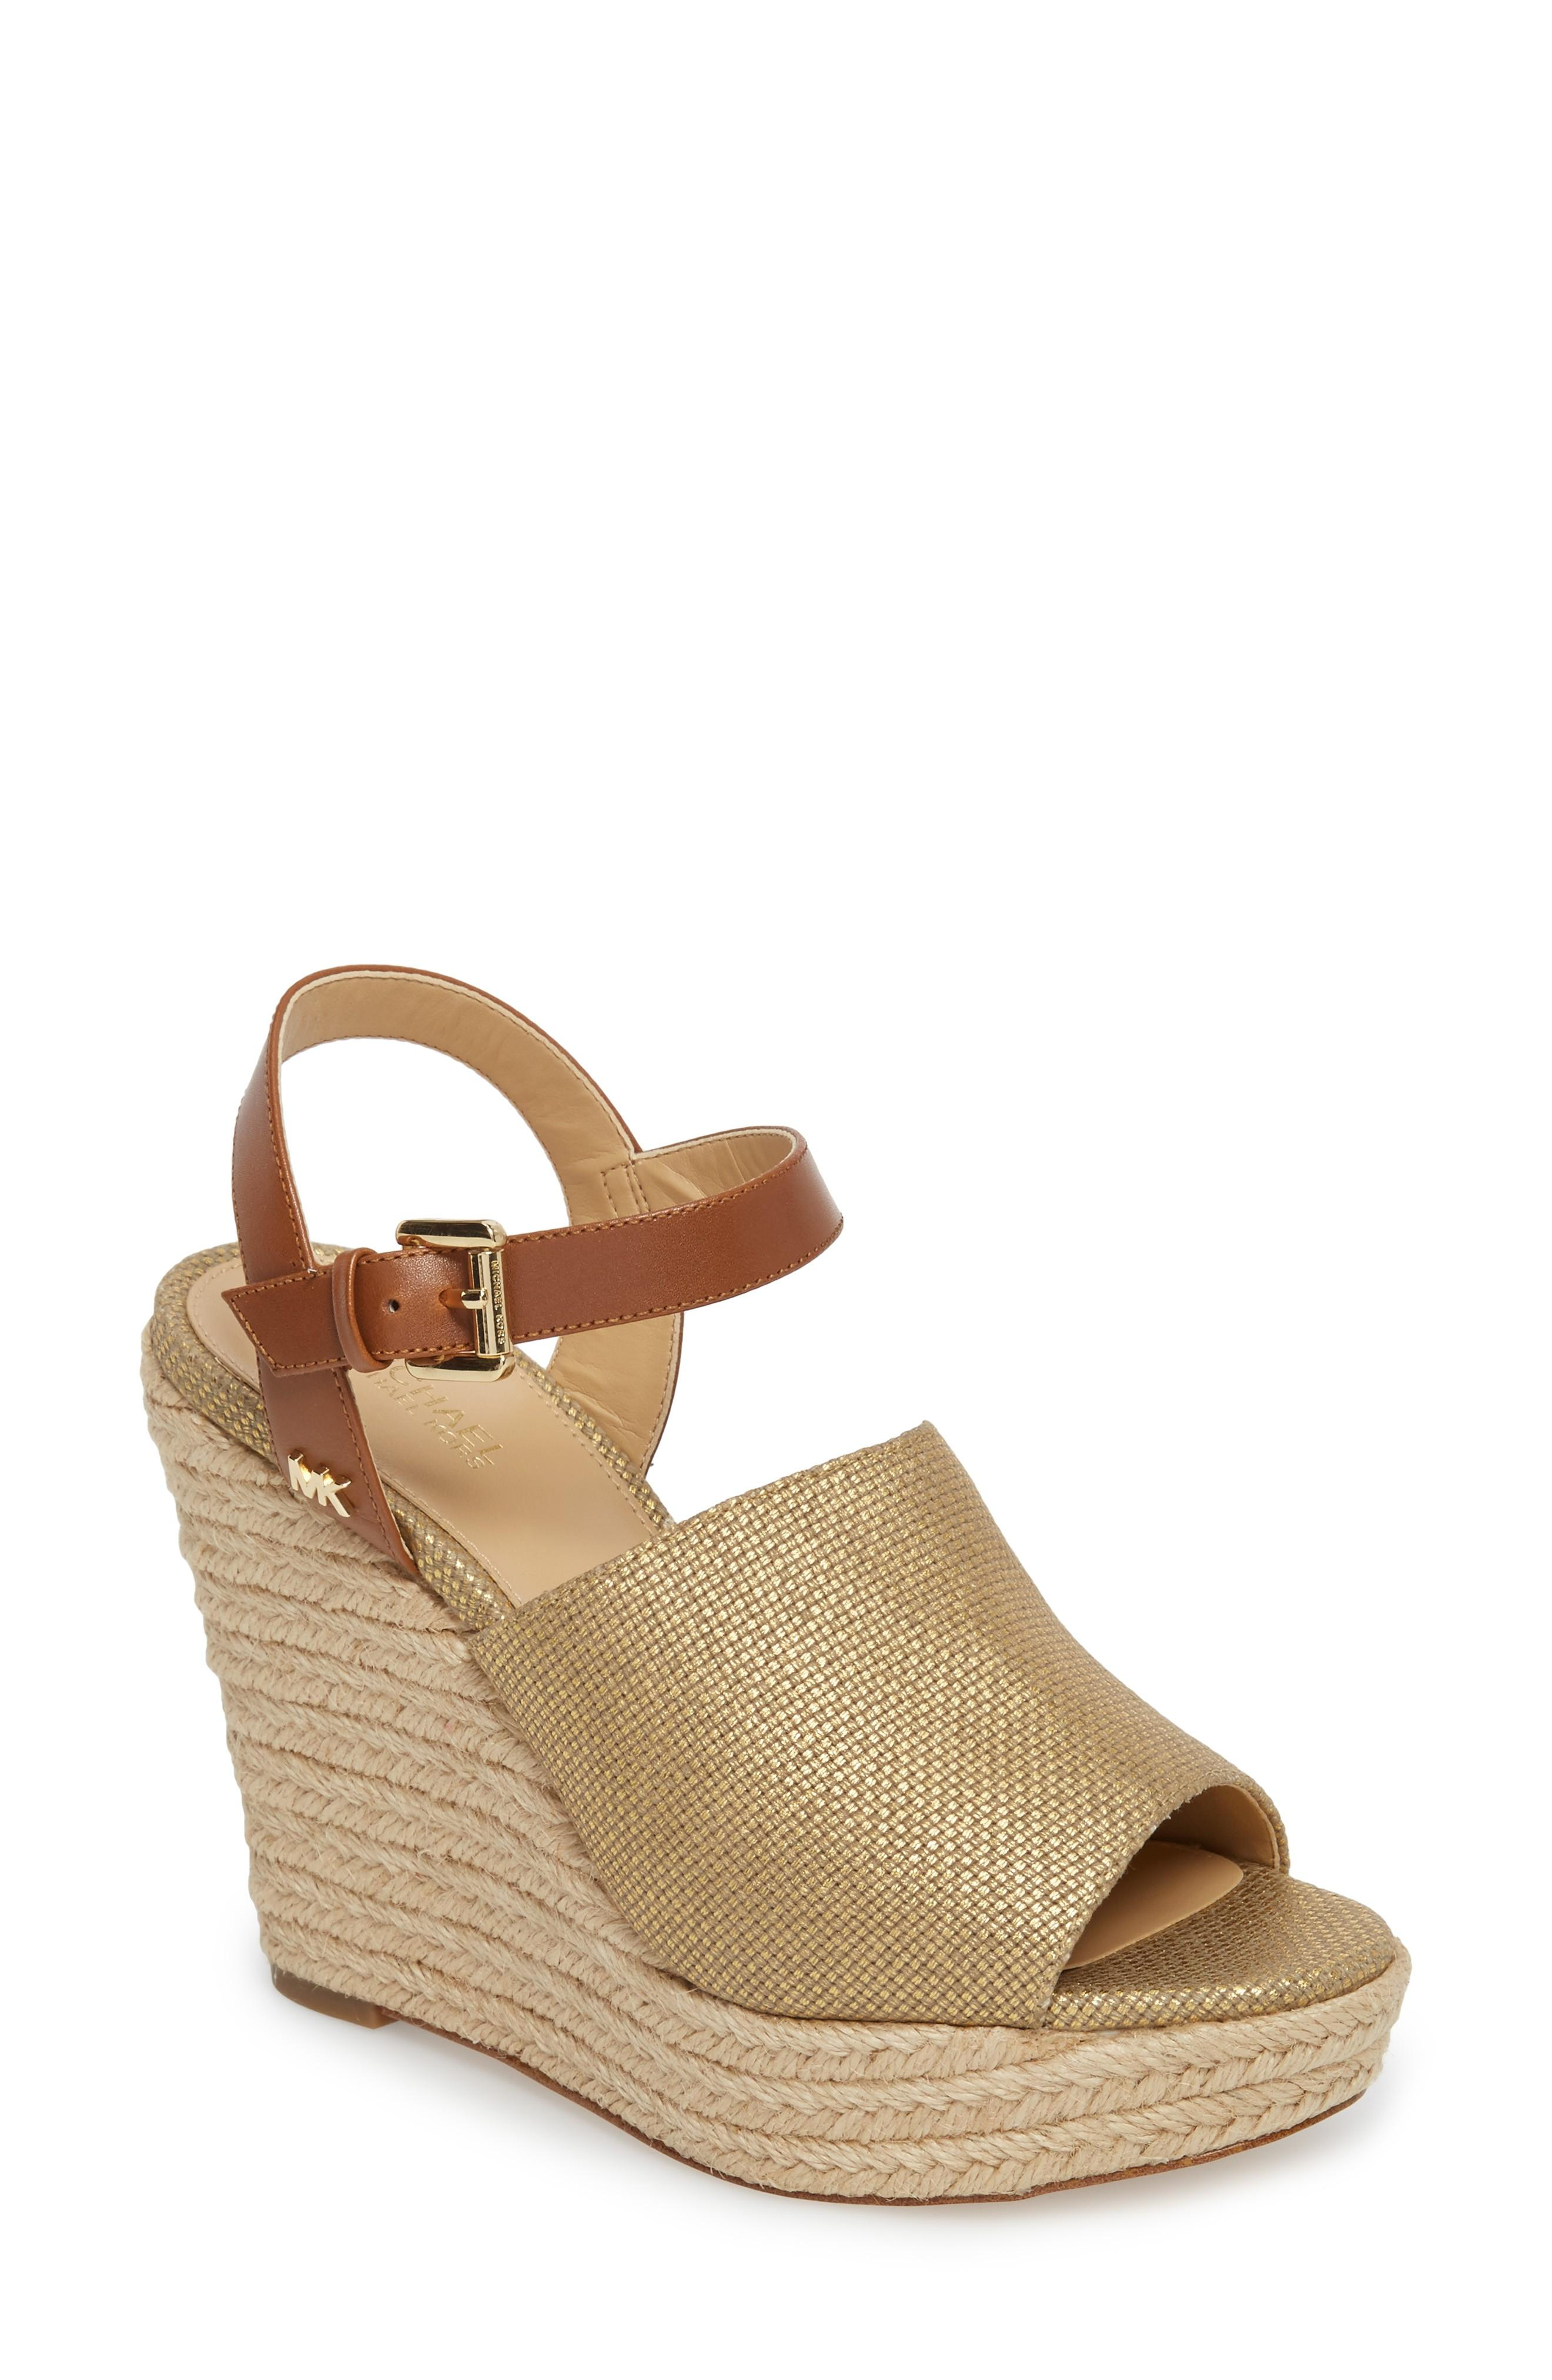 4a6e329dce5a Michael Michael Kors Penelope Espadrille Wedge Sandal In Gold  Luggage  Canvas